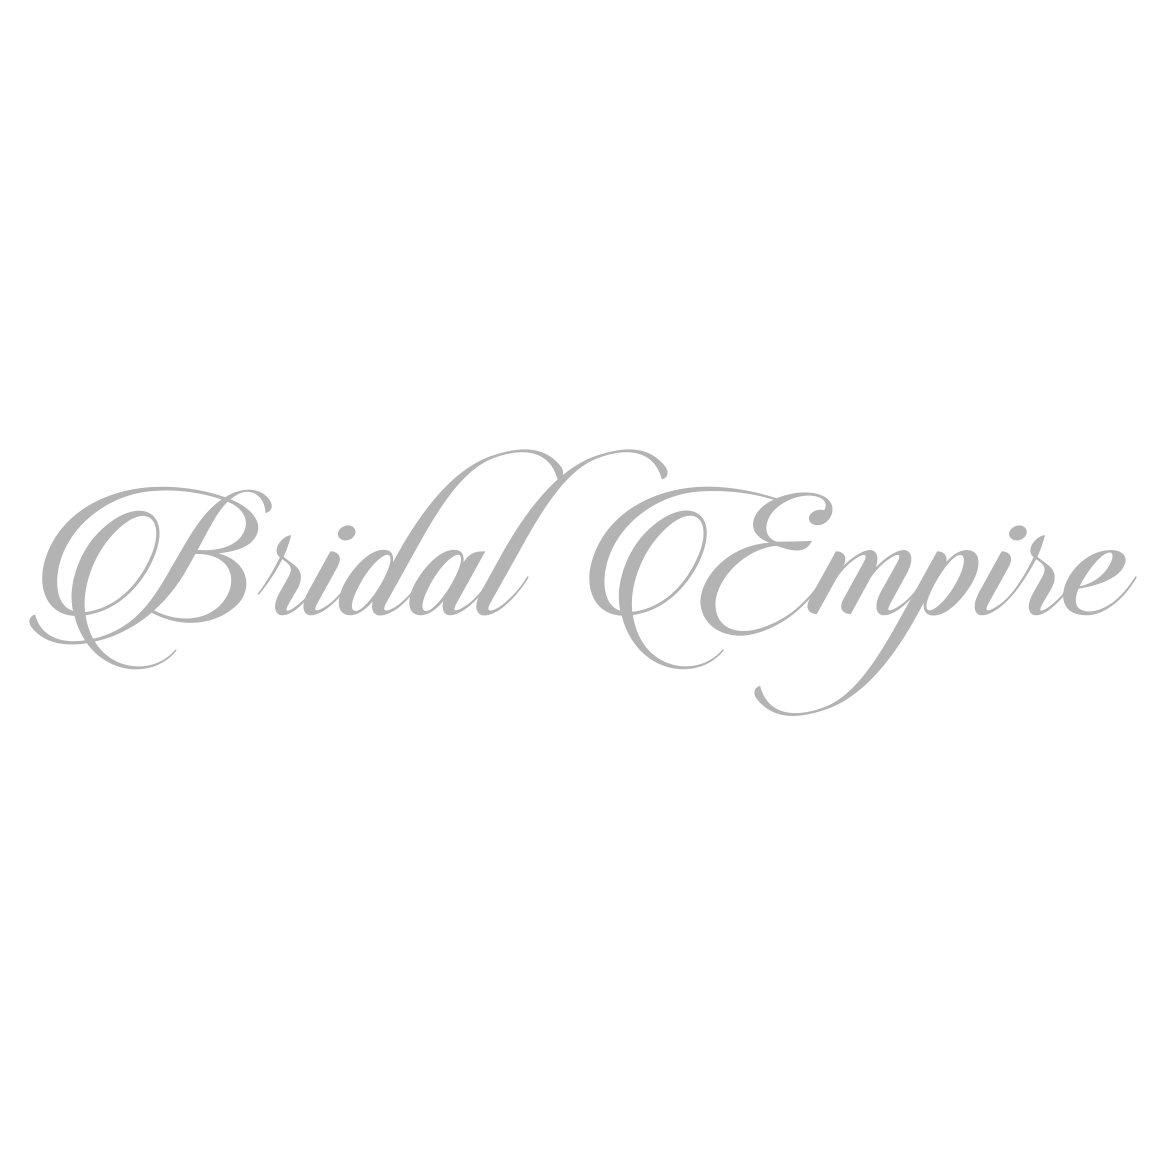 Bridal Empire LLC